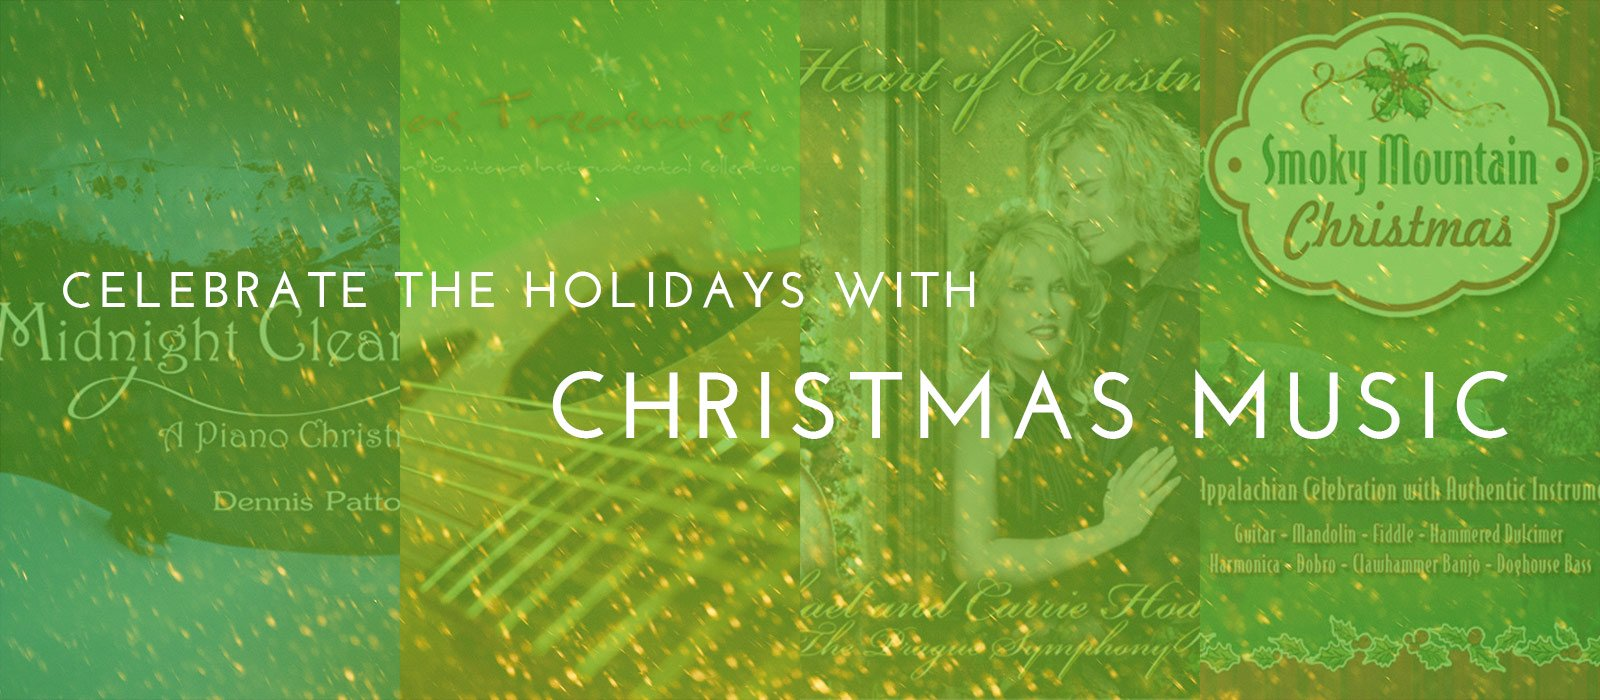 Celebrate the Holidays with Christmas Music